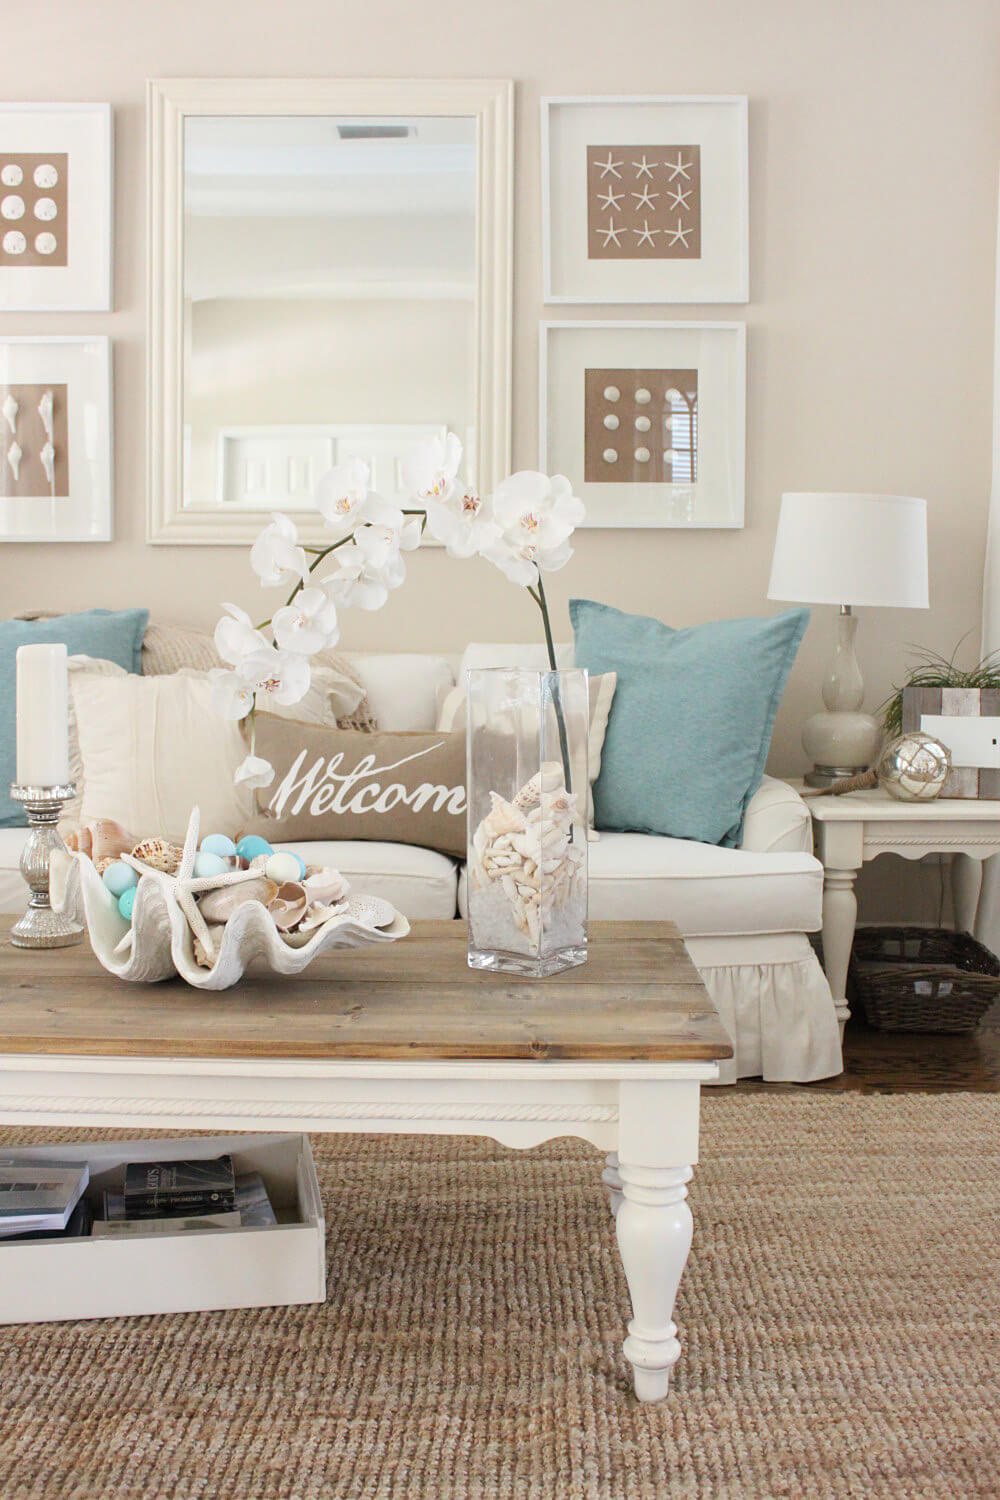 50 Best Beach And Coastal Decorating Ideas And Designs For 2021